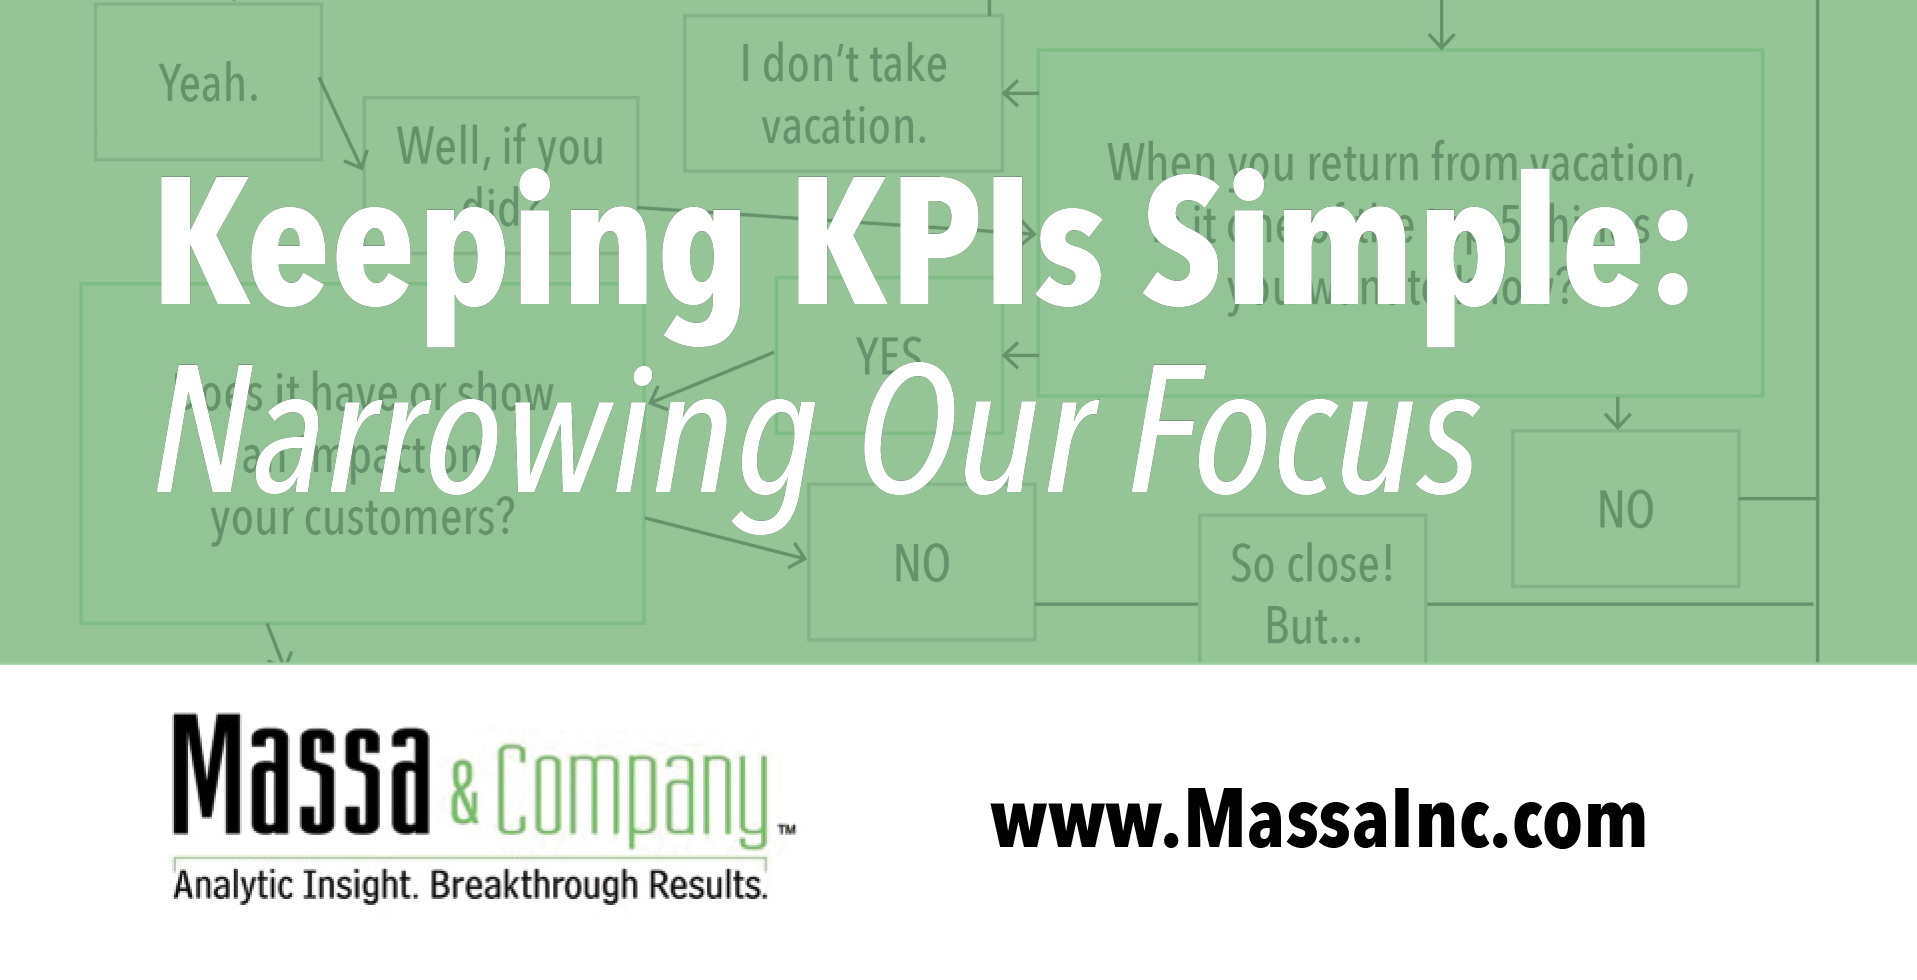 Keeping KPIs Simple: Narrowing Our Focus